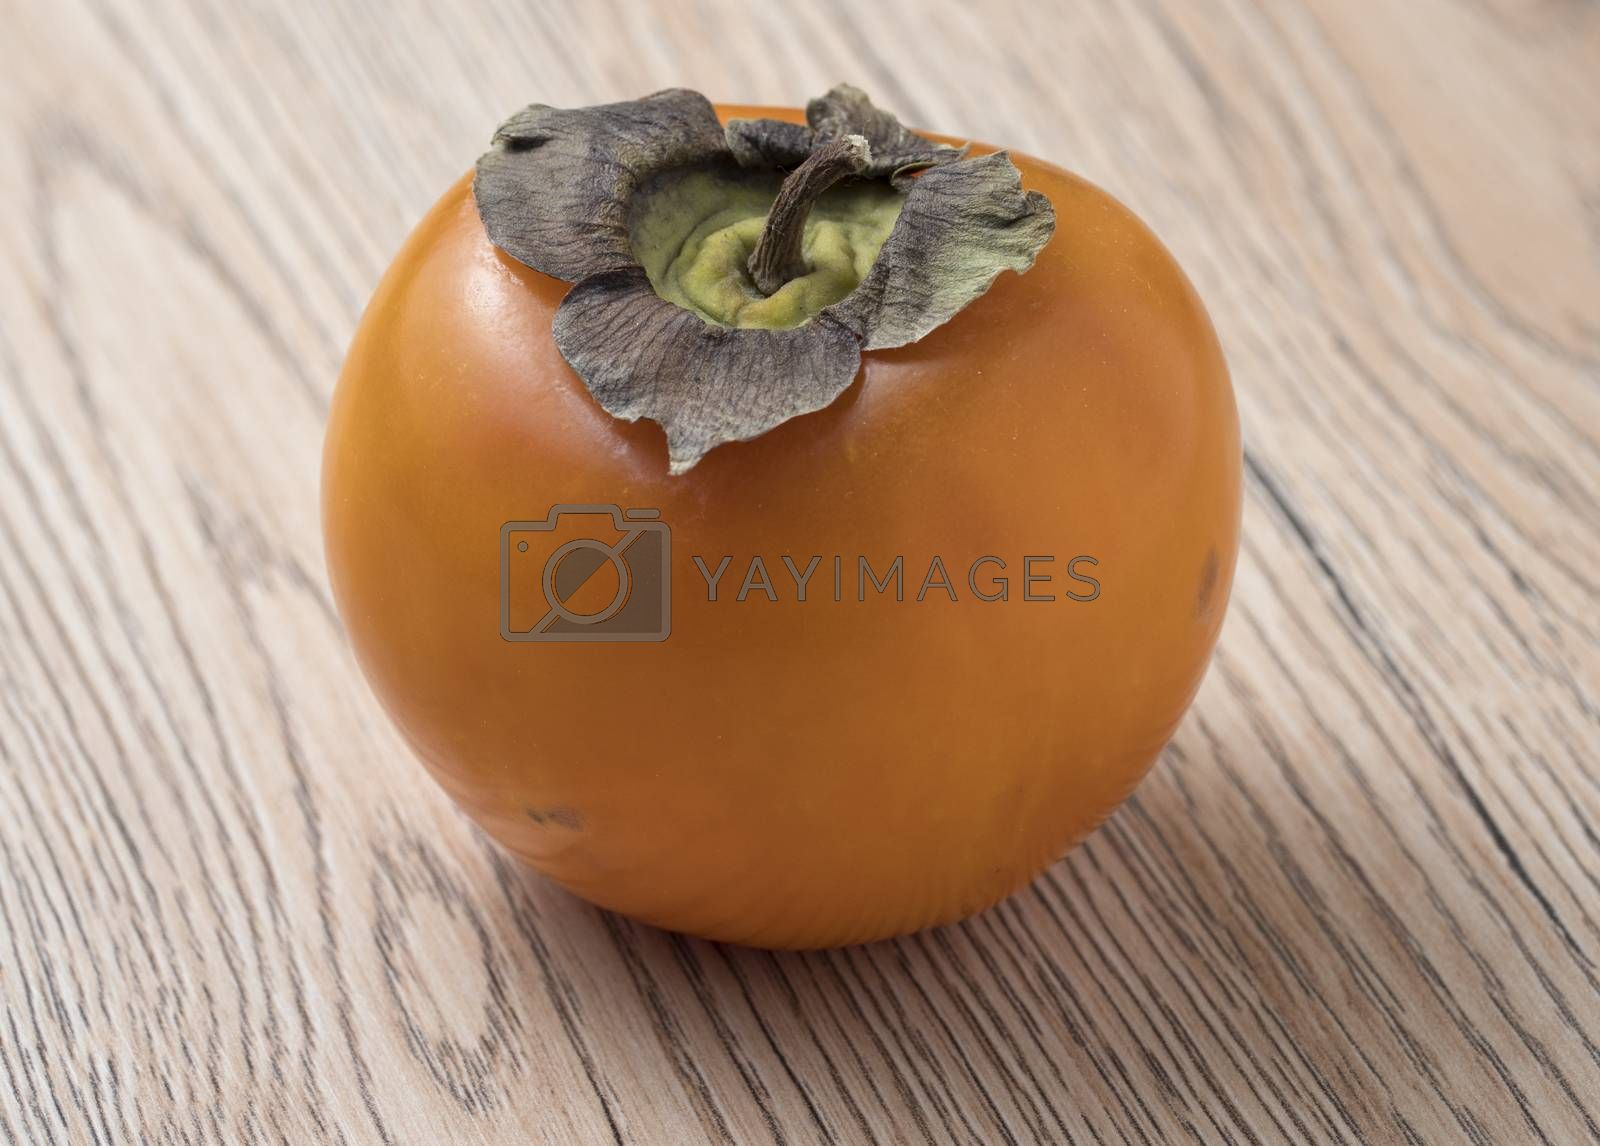 Royalty free image of Whole ripe persimmon fruit on wooden background. by phortcach